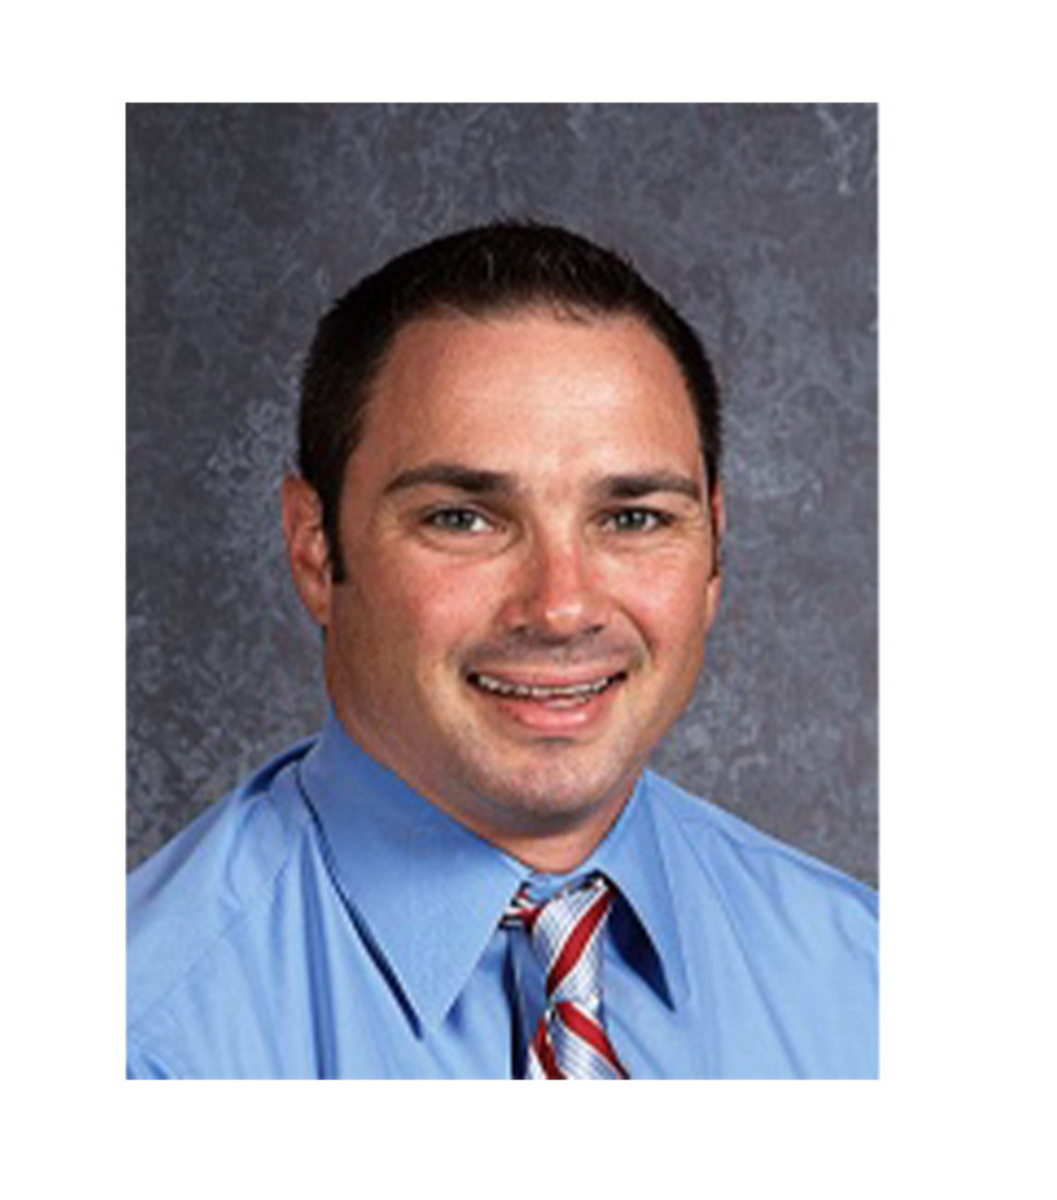 Phillip Poggi will be our new athletic director for the 15-16 school year. He is currently the athletic director at Kings high school.  He plans on being active in the Sycamore community.